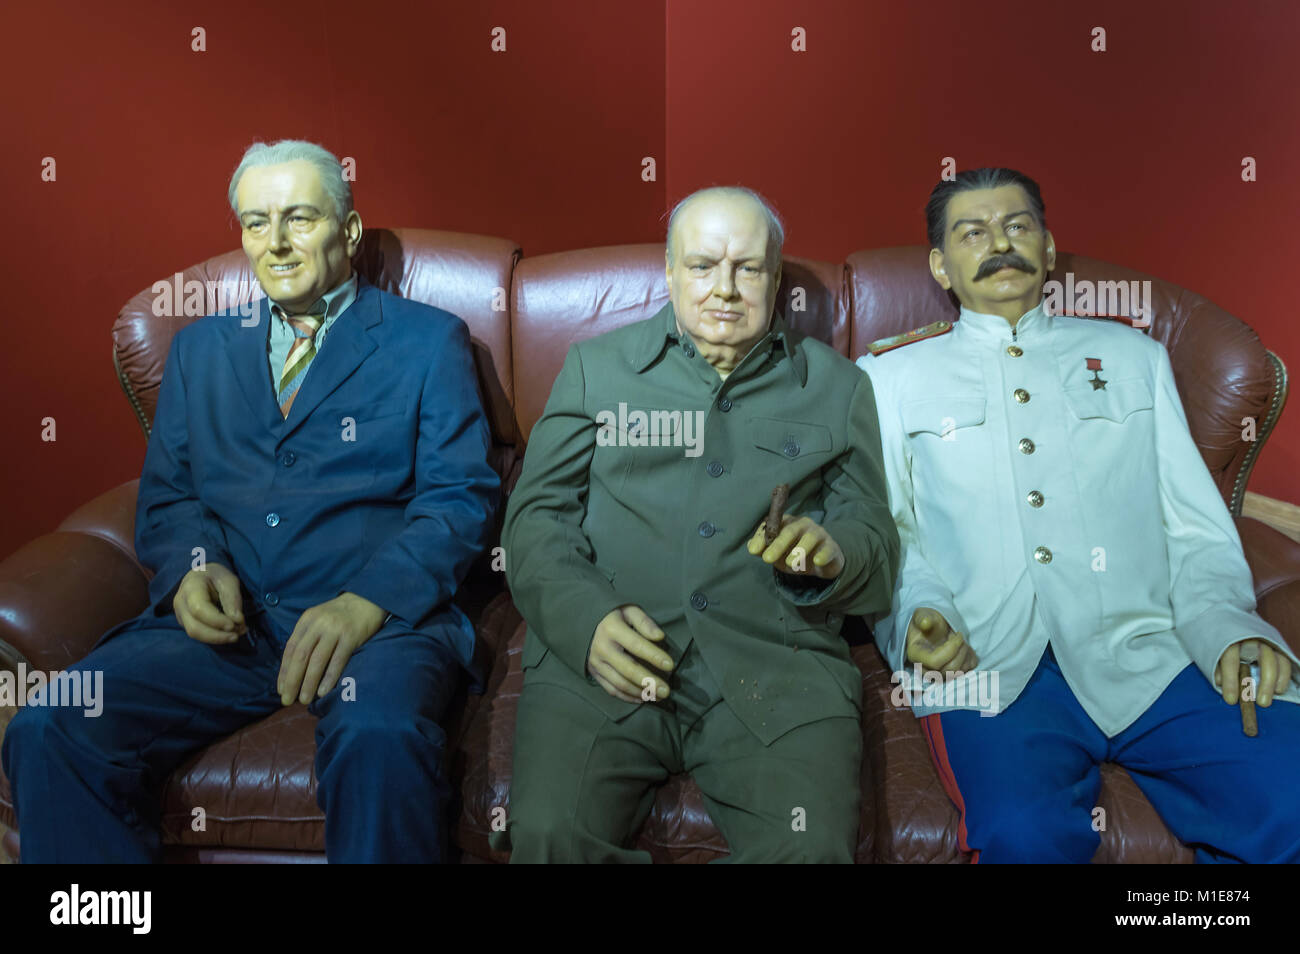 Wax statues of World War II leaders Roosevelt, Churchill and Stalin at the Krakow Wax Museum - Cracow, Poland. - Stock Image